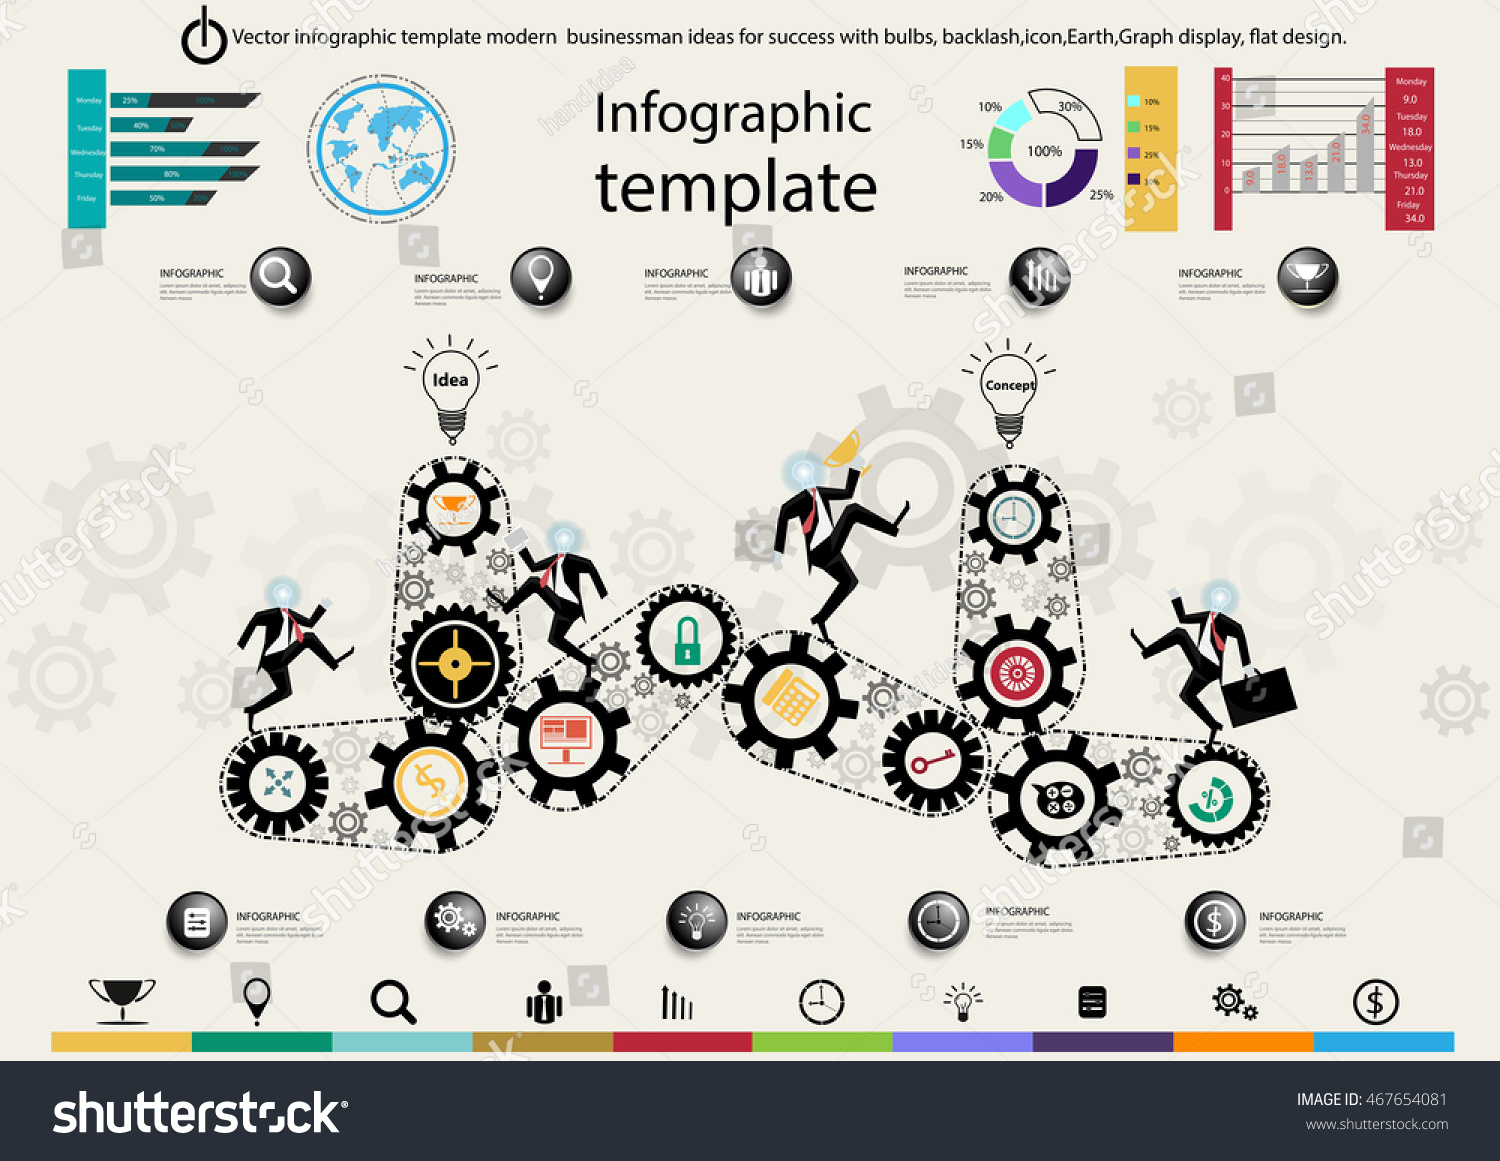 Infographic template ideas